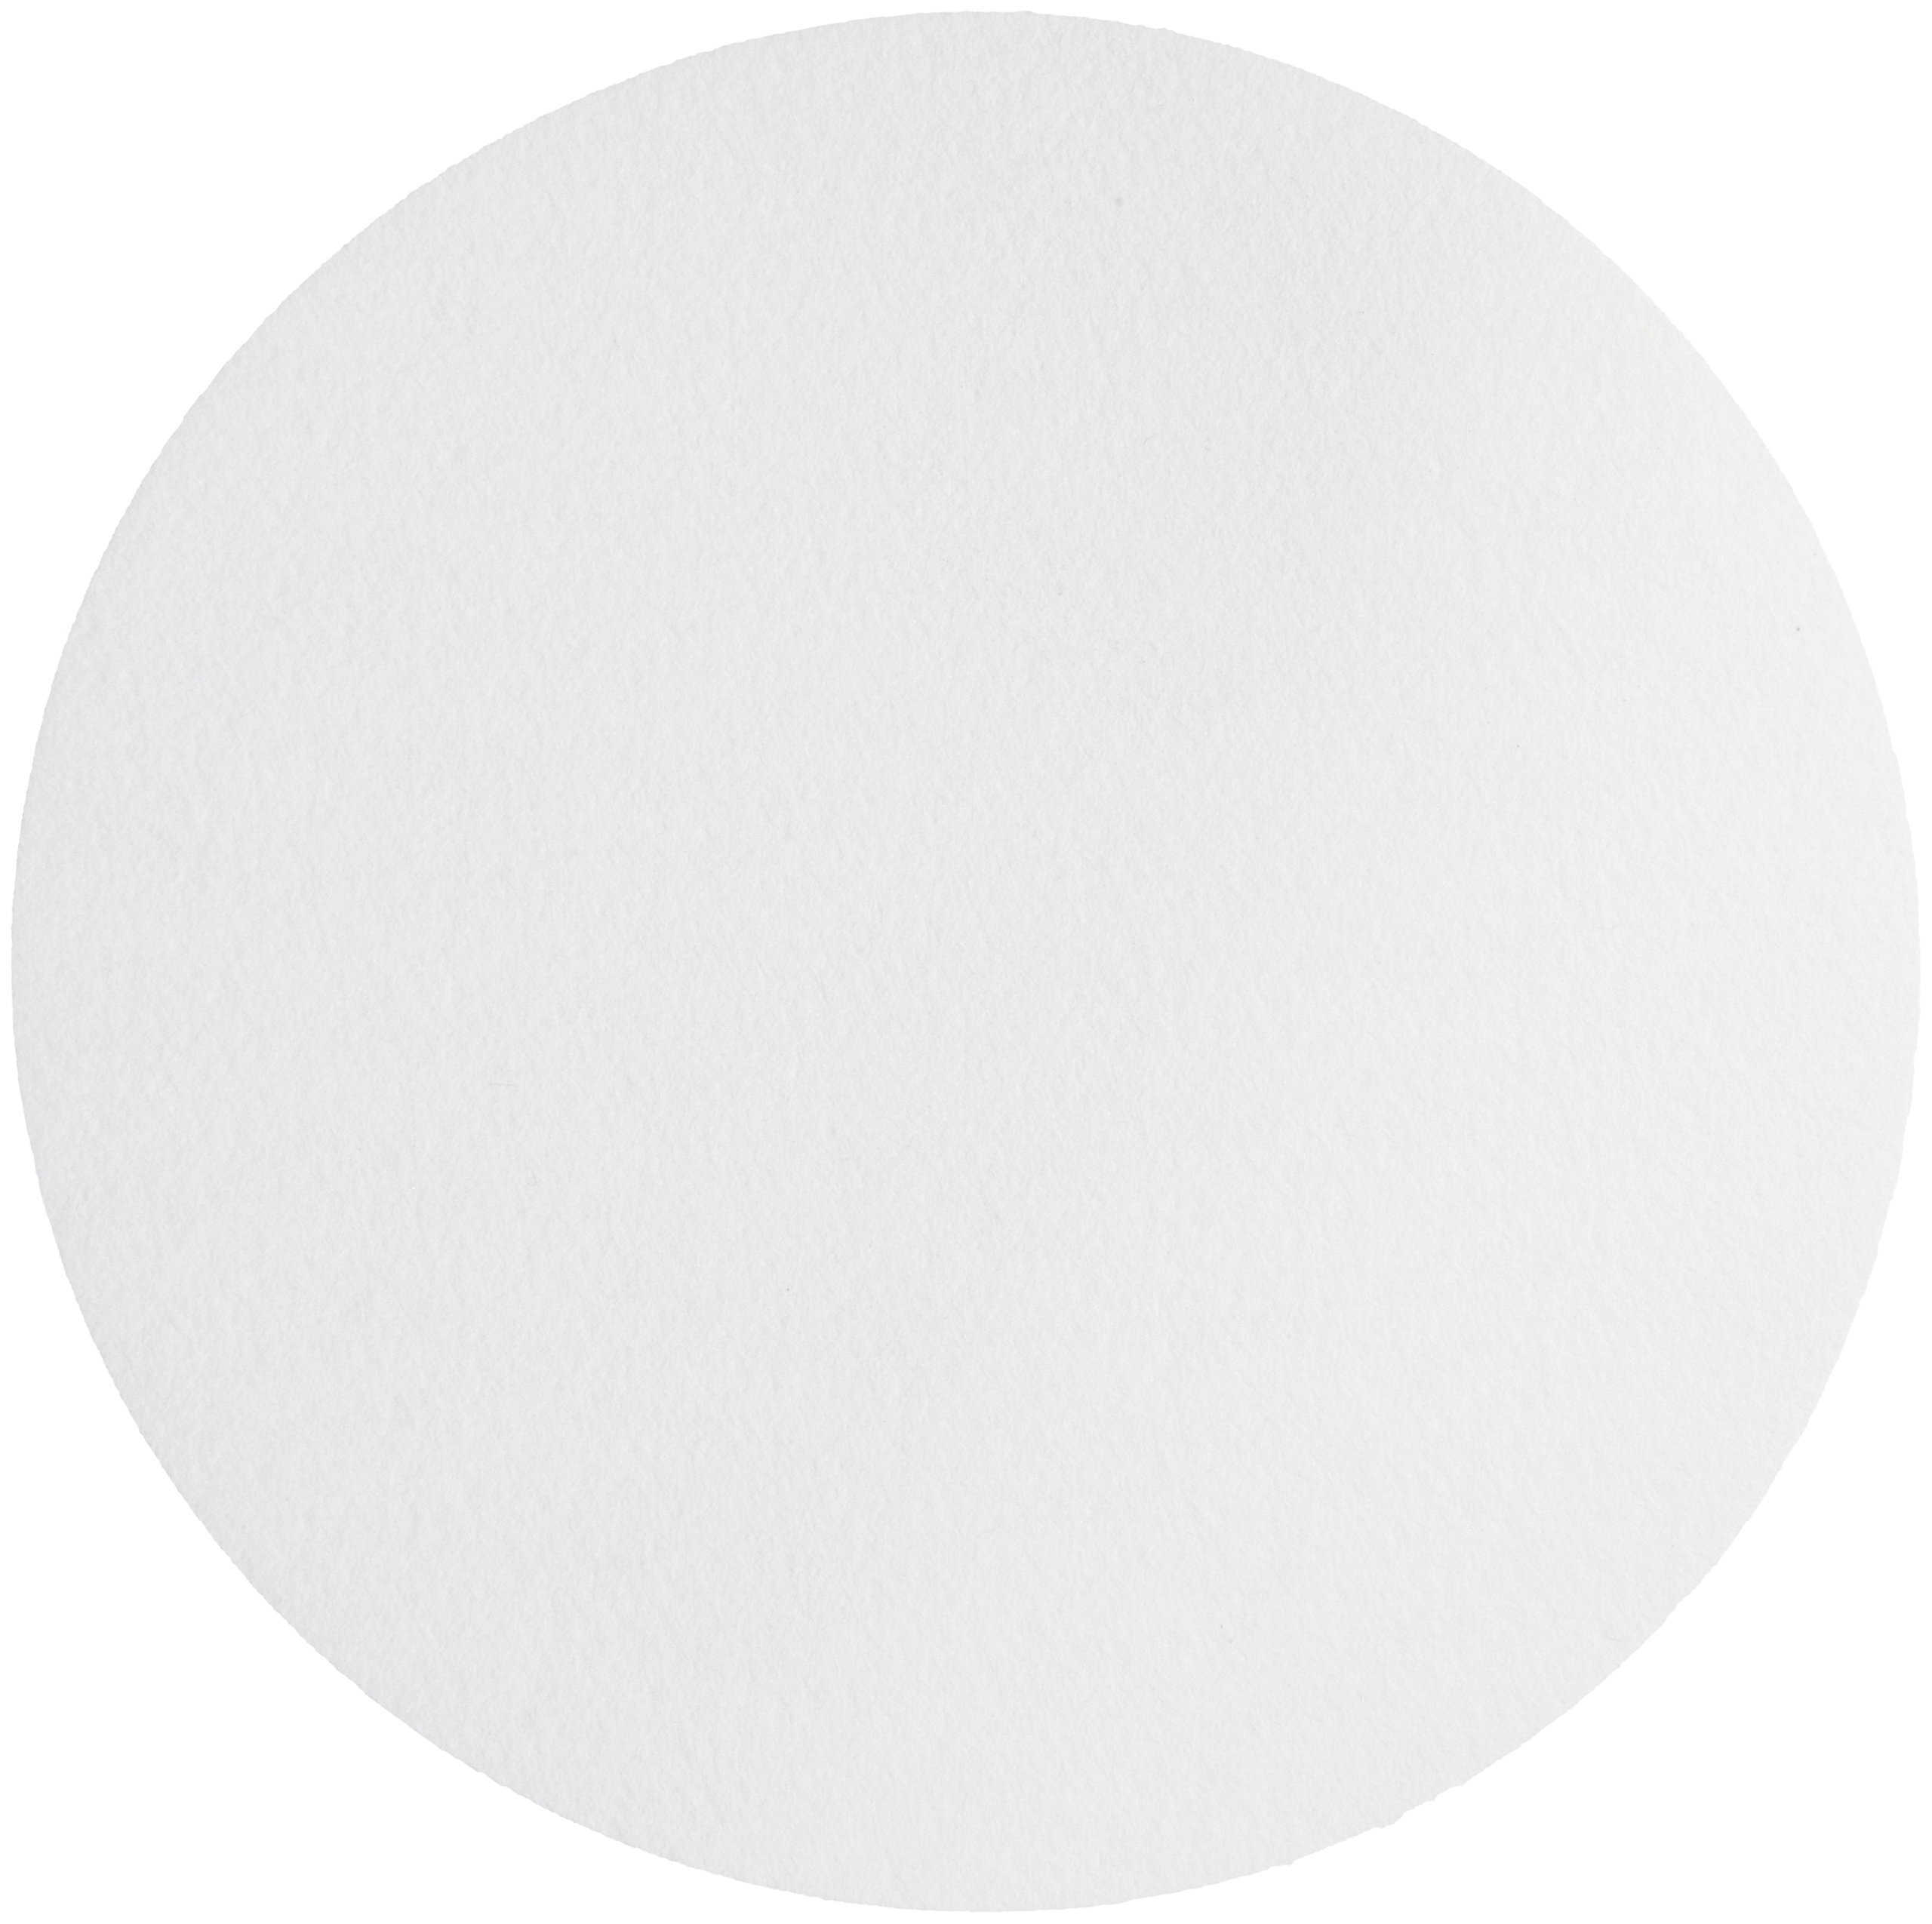 Whatman 1002-385 Quantitative Filter Paper Circles, 8 Micron, 21 s/100mL/sq inch Flow Rate, Grade 2, 385mm Diameter (Pack of 100) by Whatman